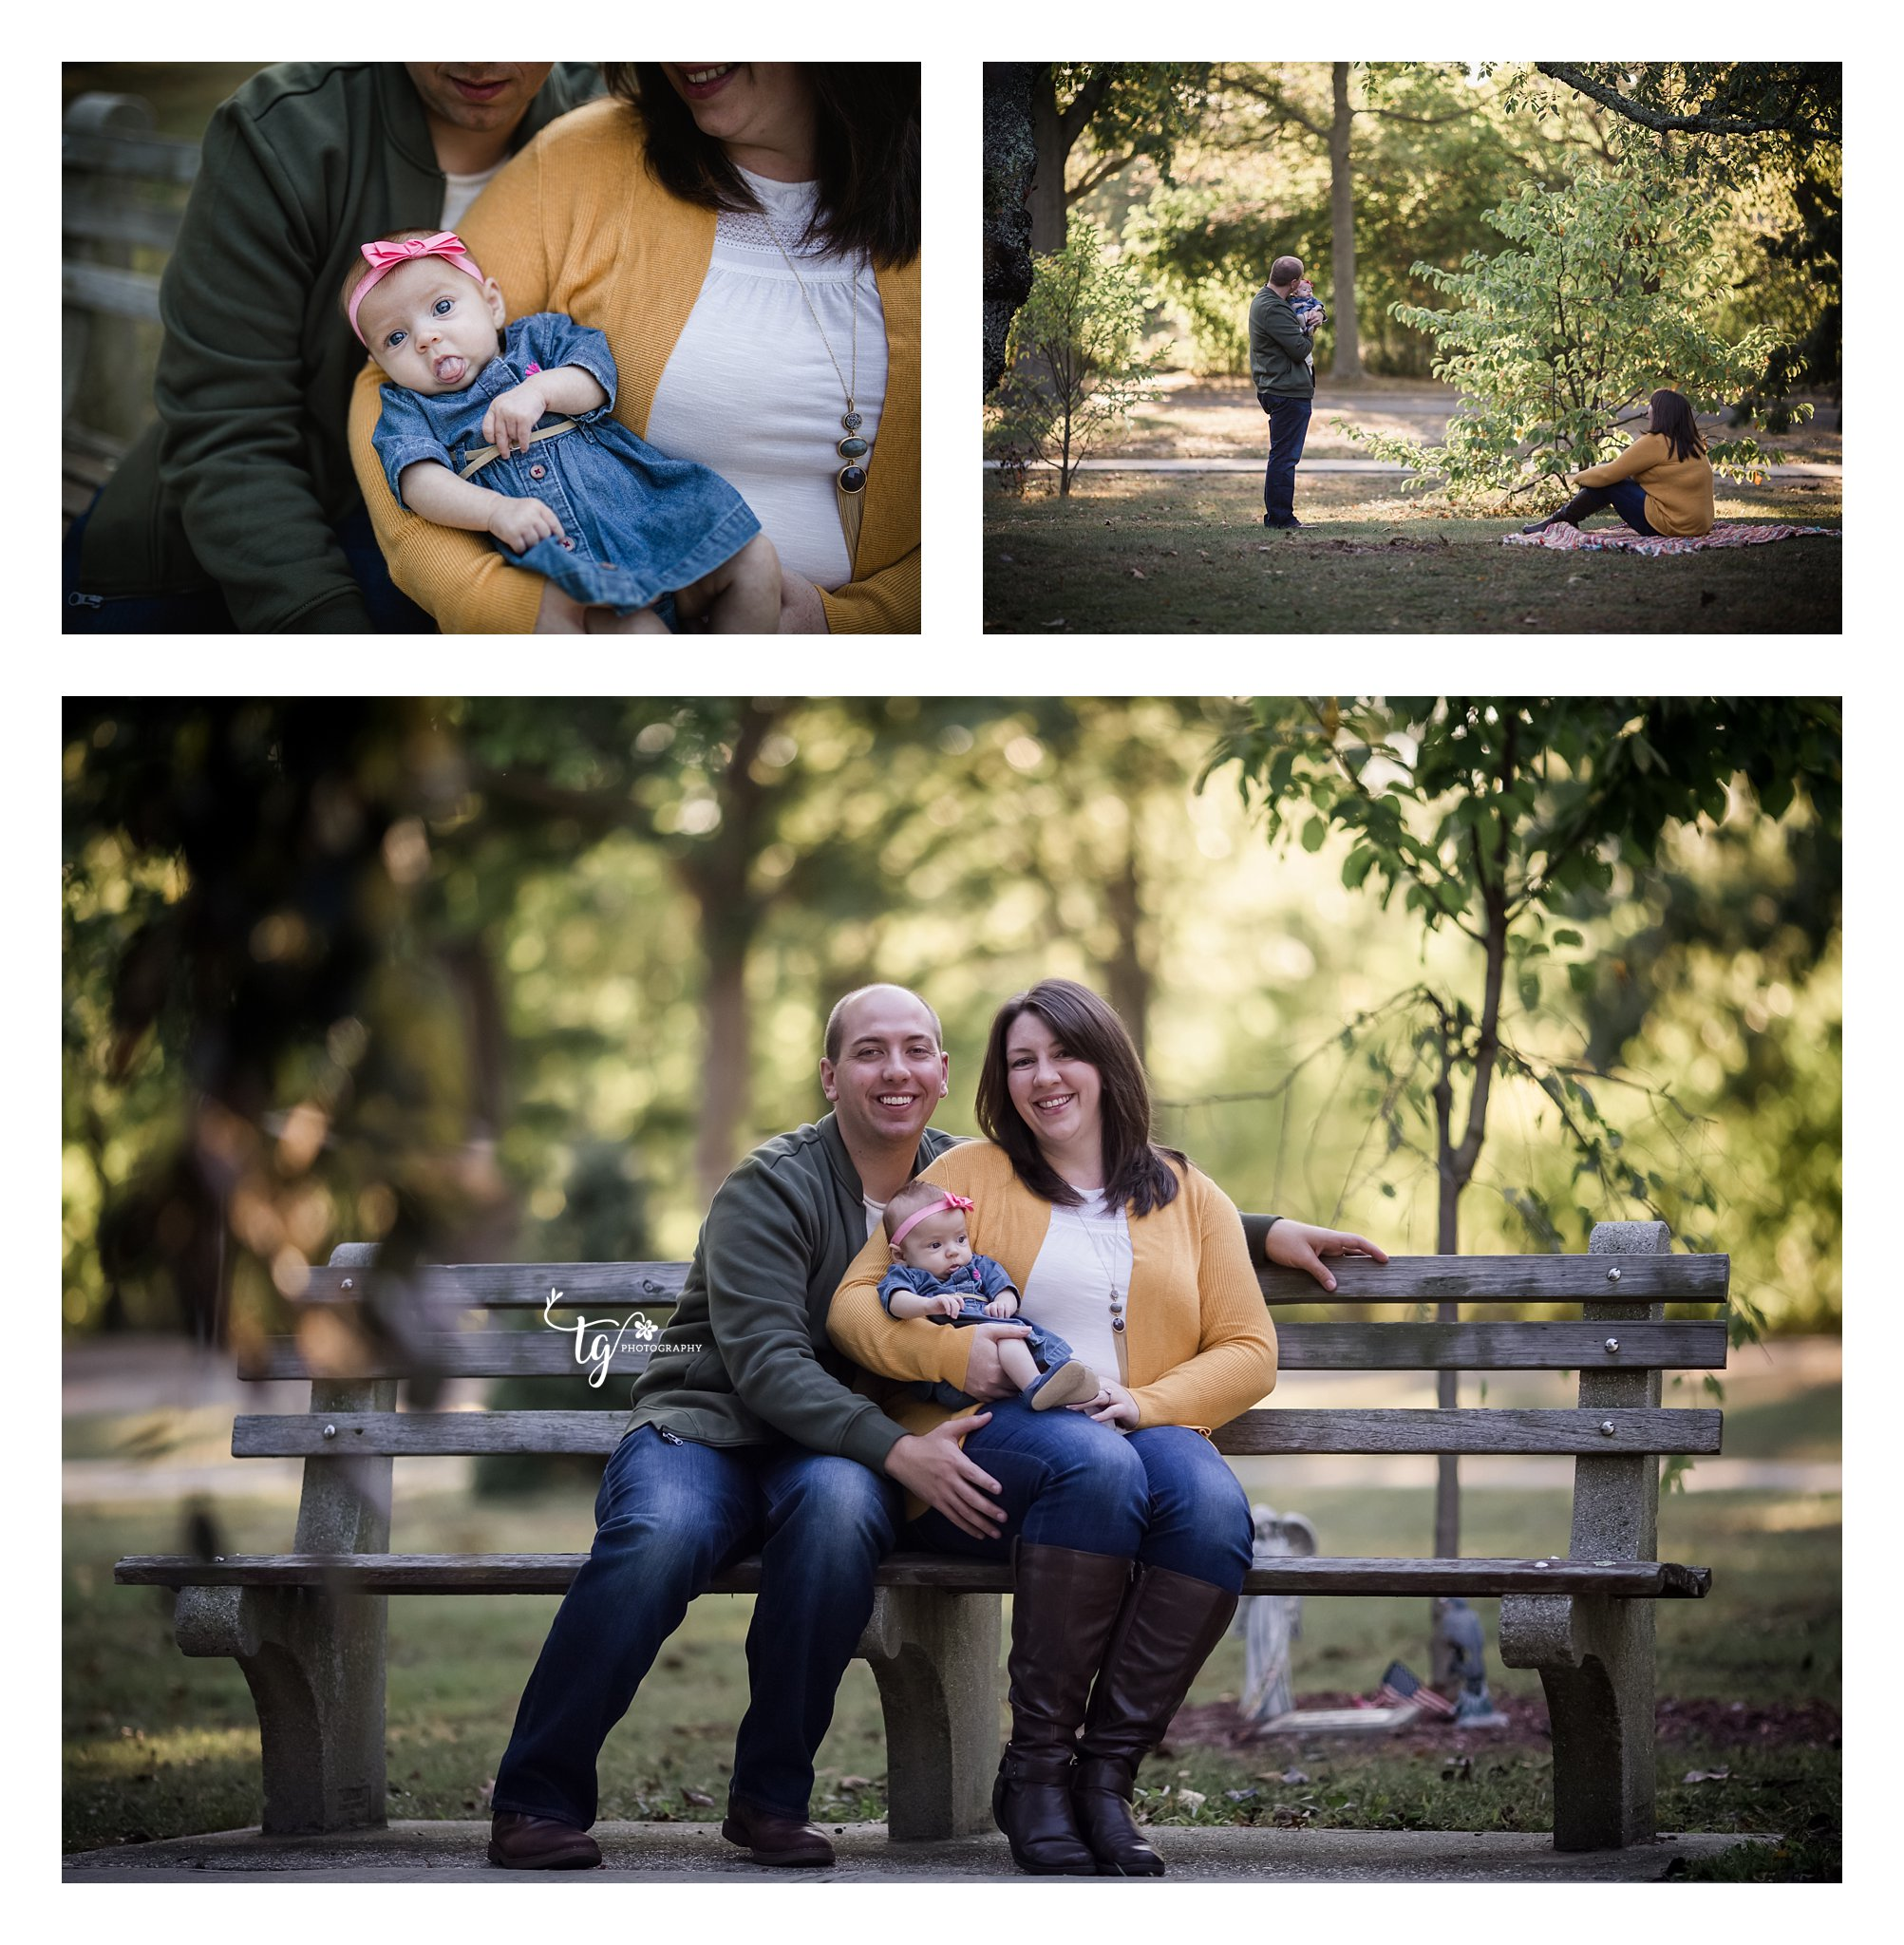 family on park bench looking at baby and dad kissing baby